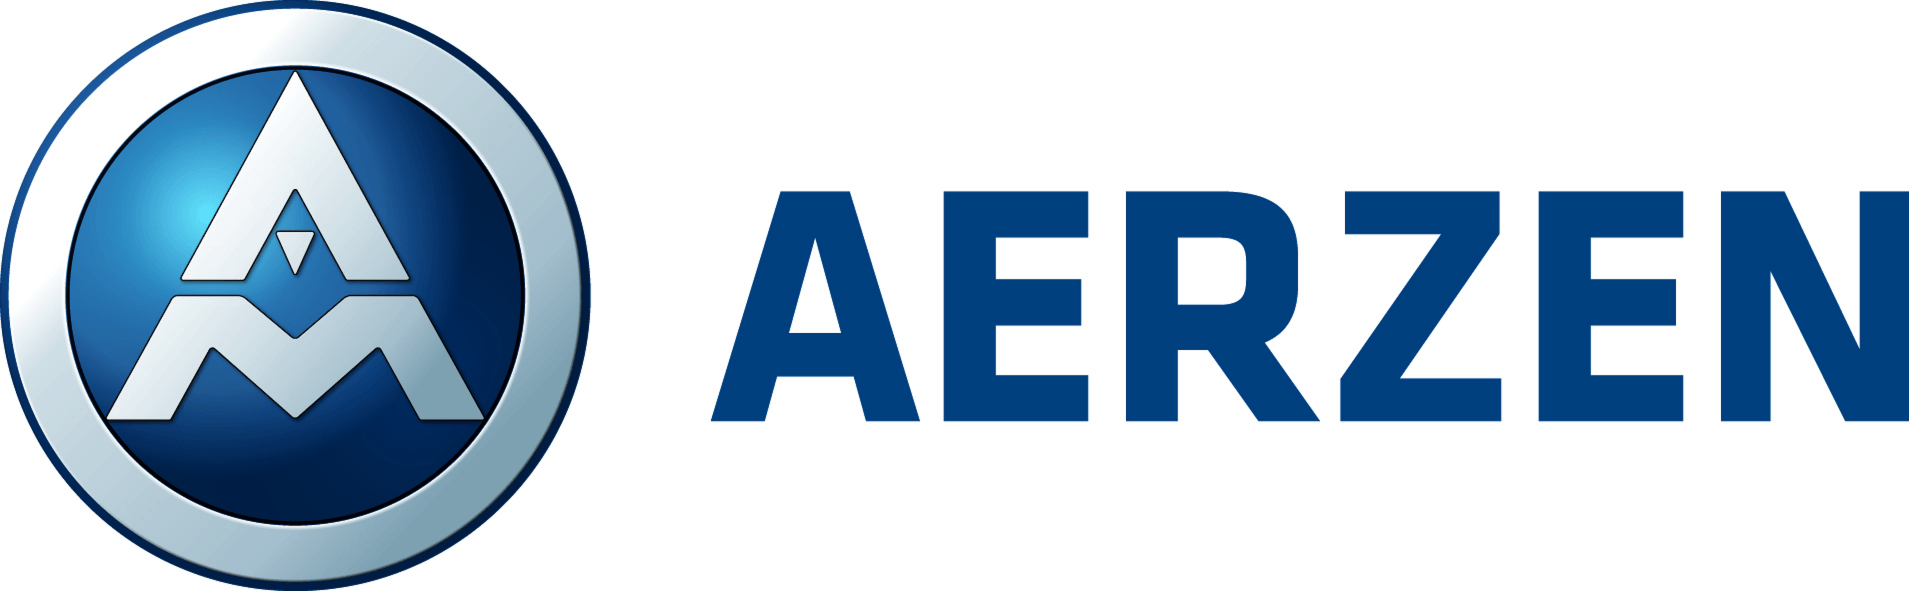 Aerzen Machines Ltd